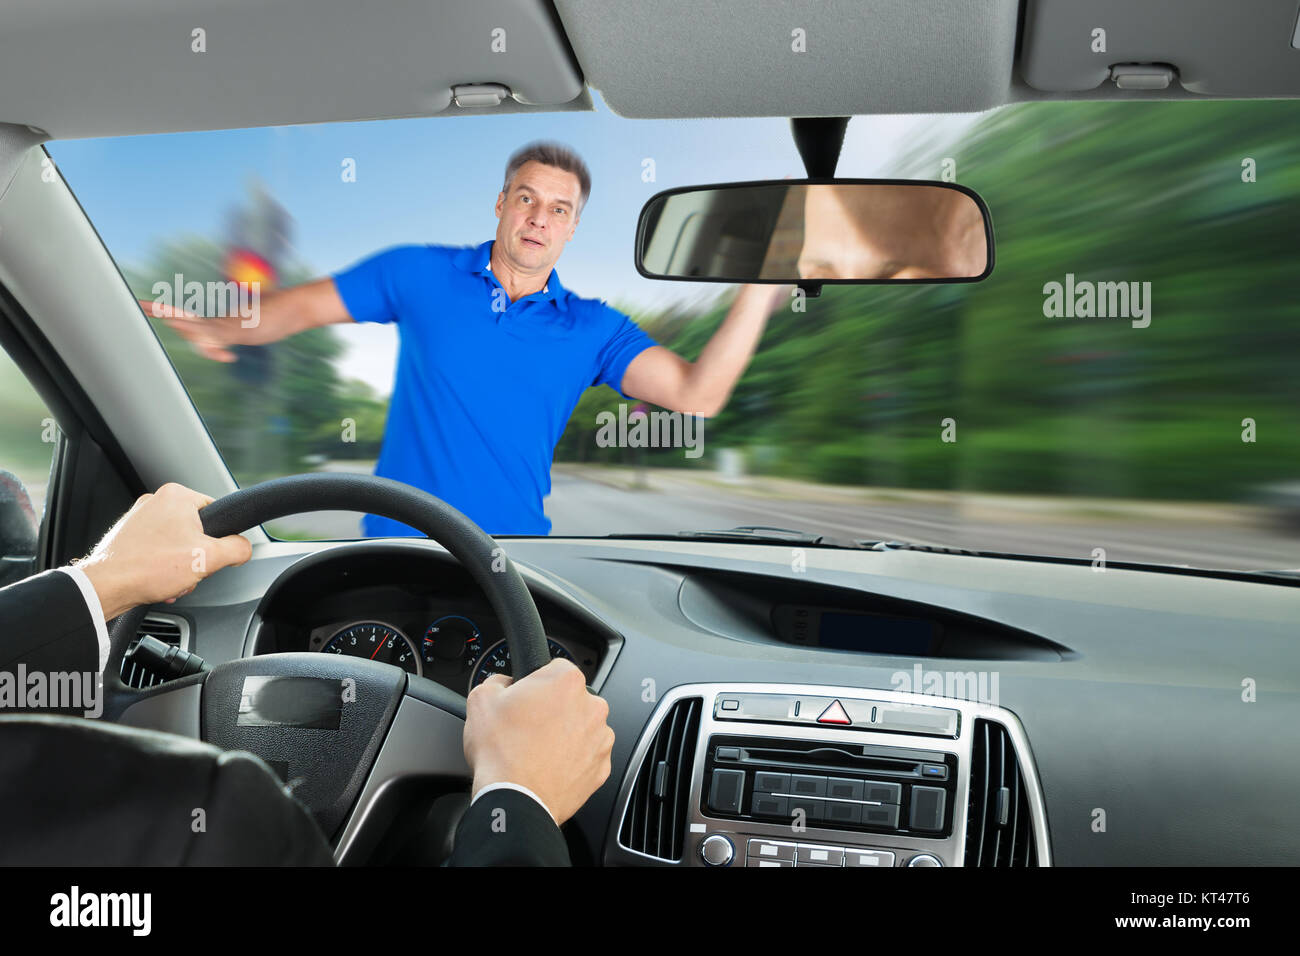 Car Accident On Road - Stock Image